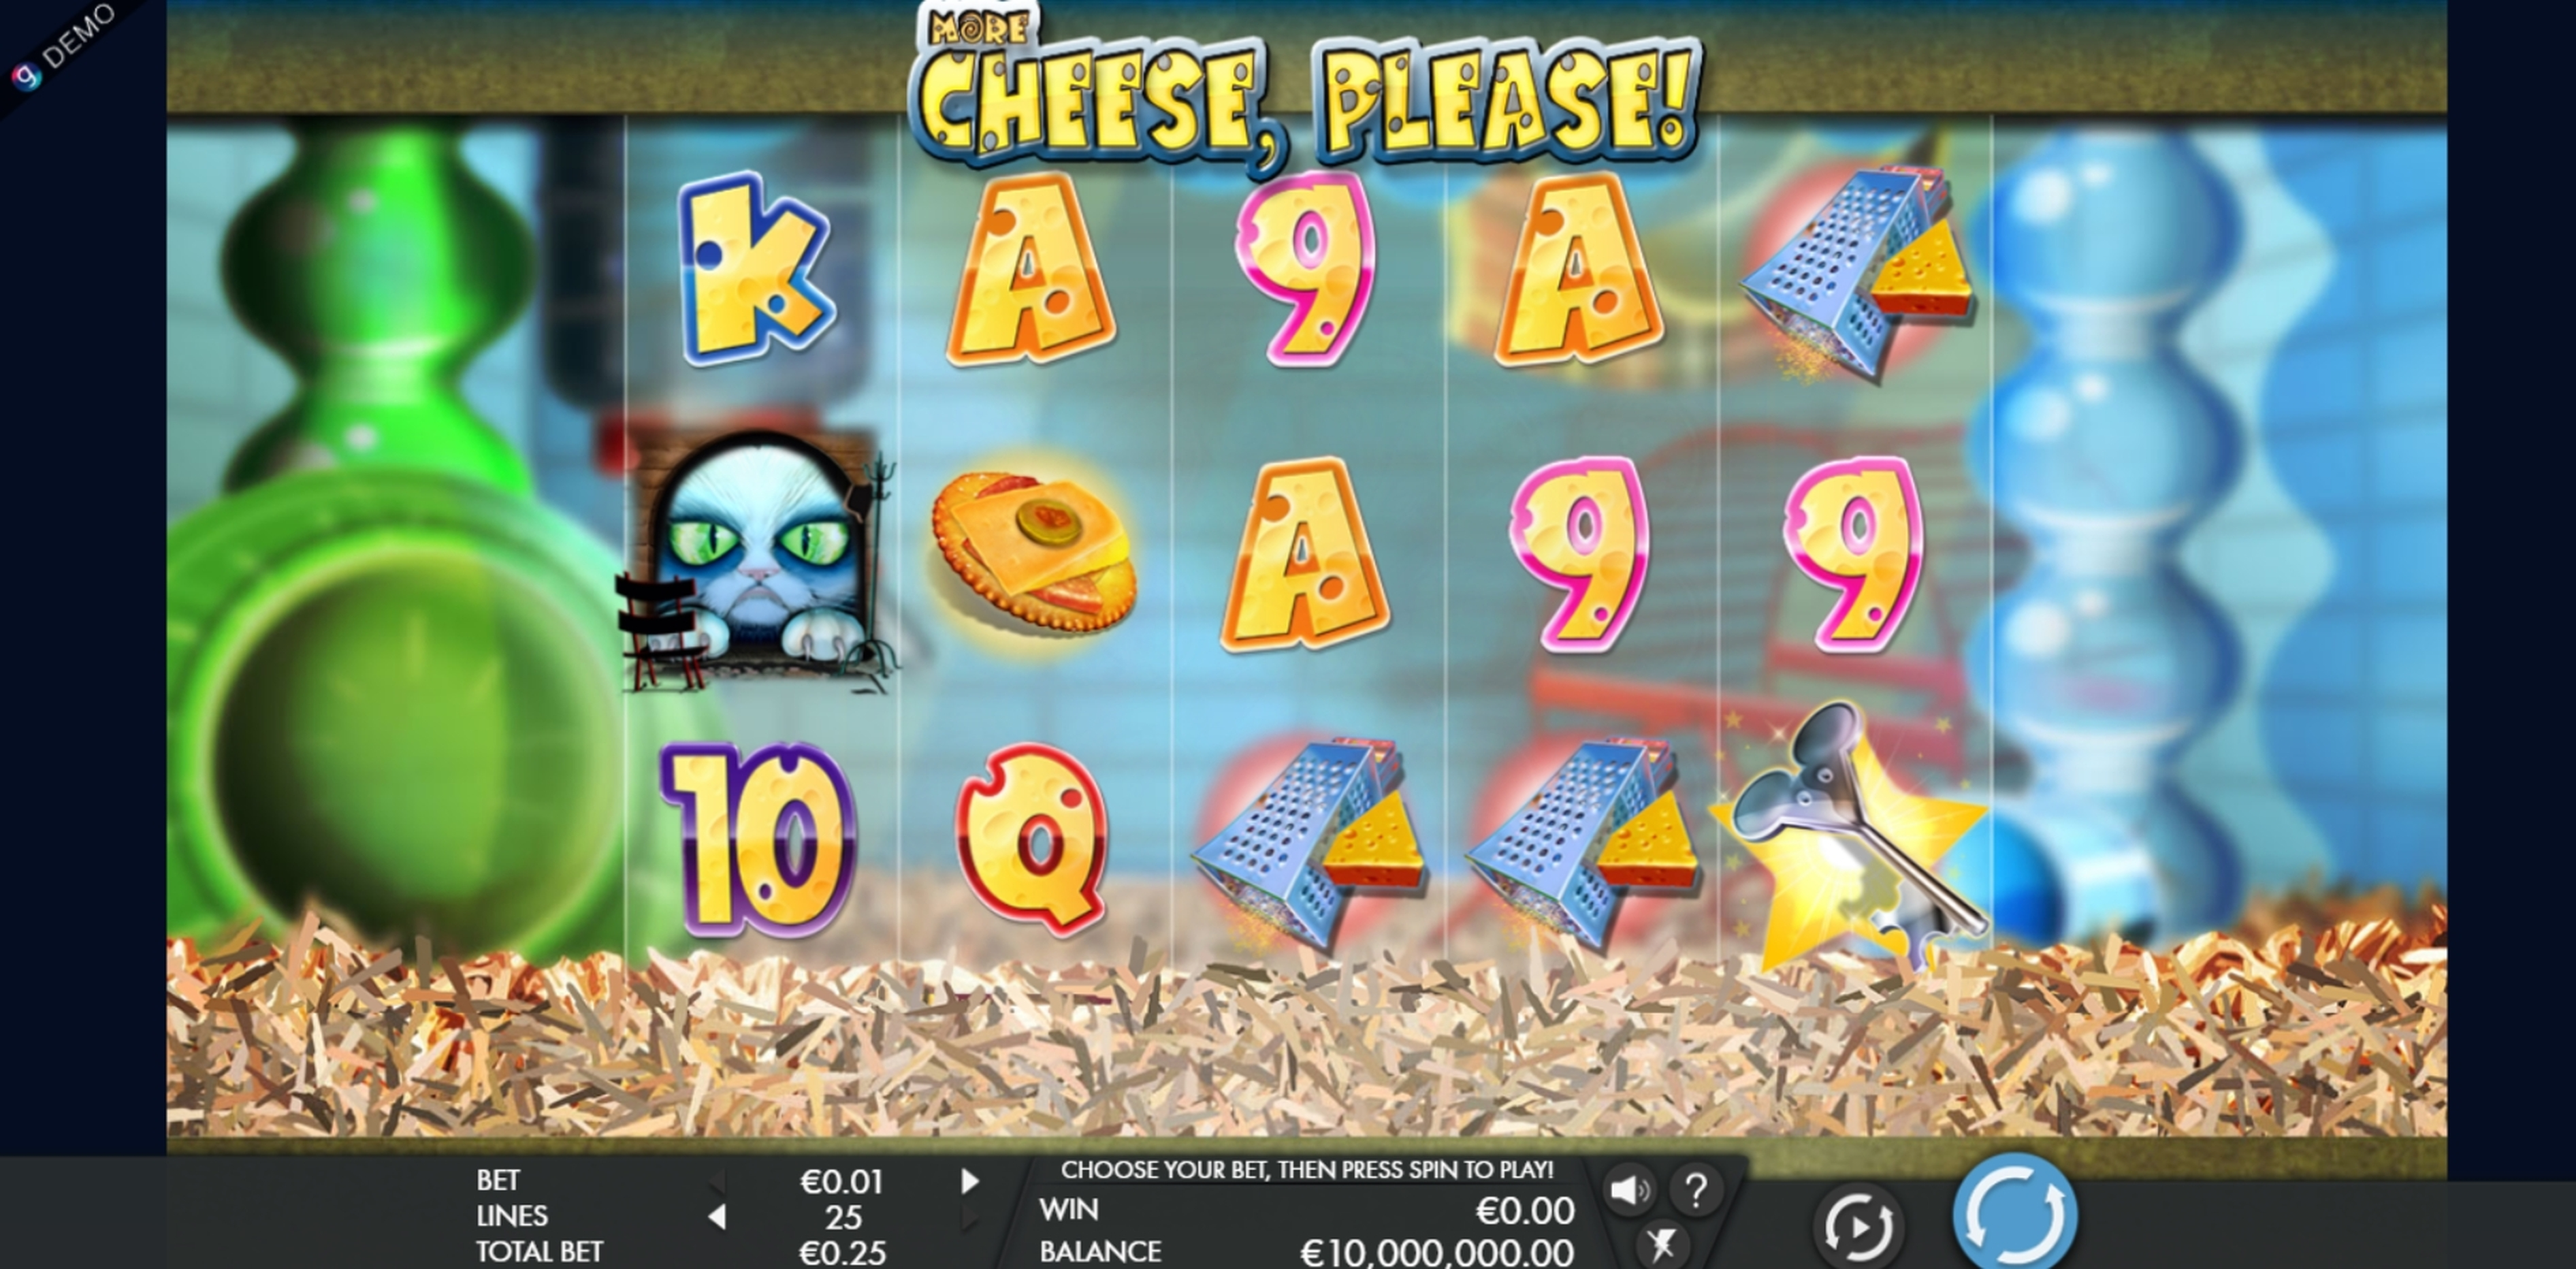 Reels in More Cheese Please Slot Game by Genesis